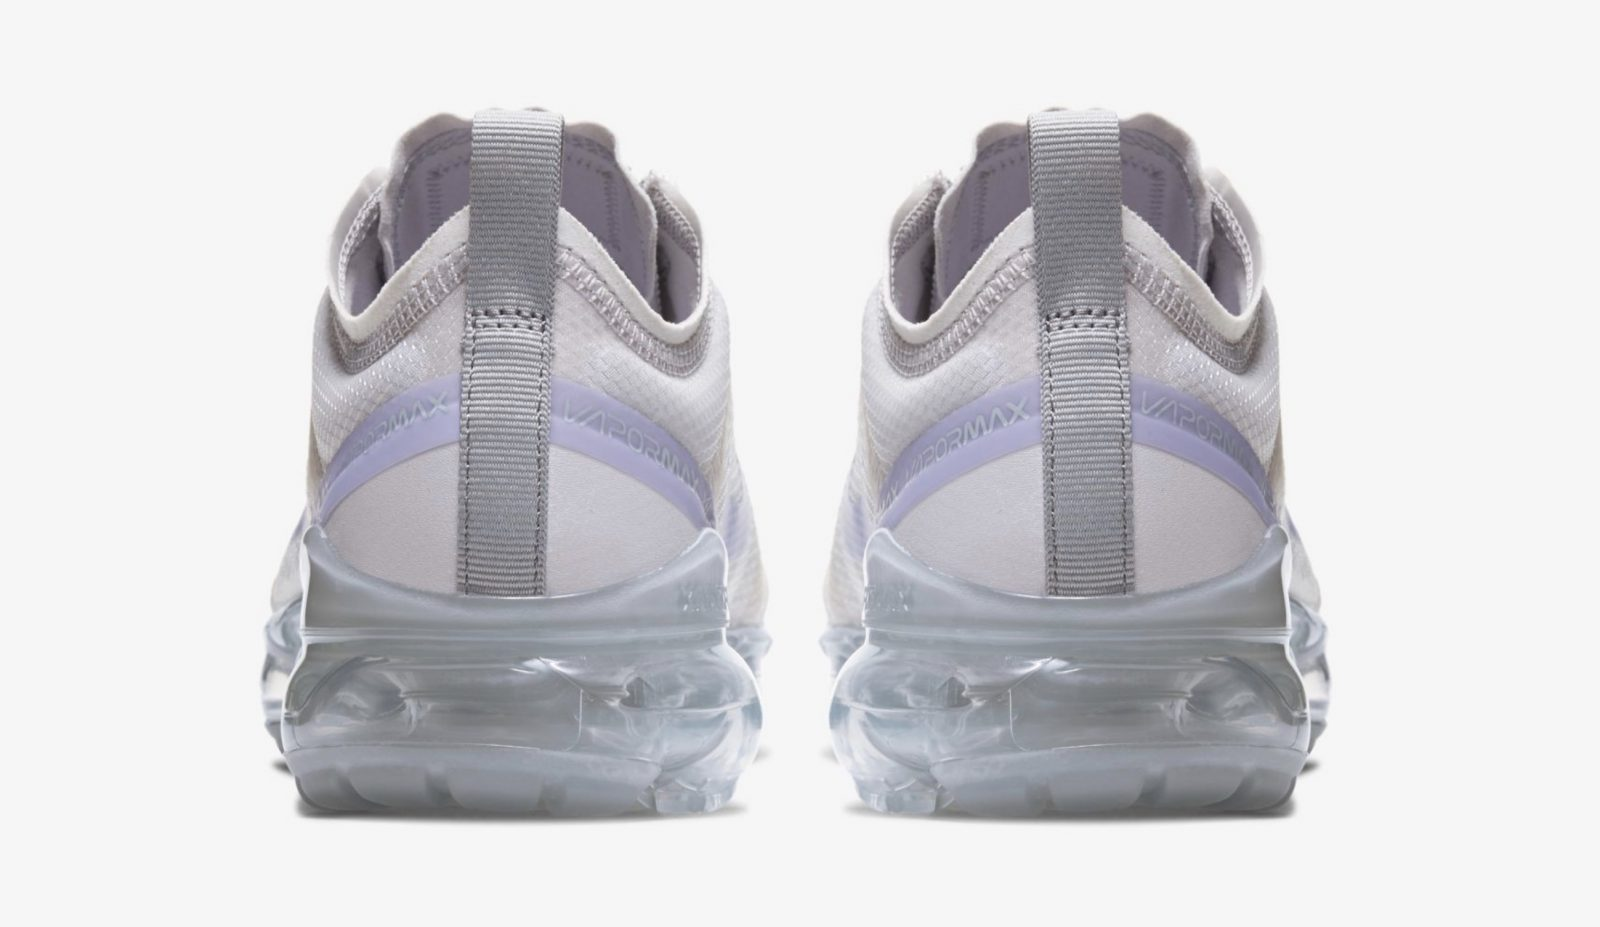 Shop Nike Air Max Dia SE Vast Grey Purple Agate at the